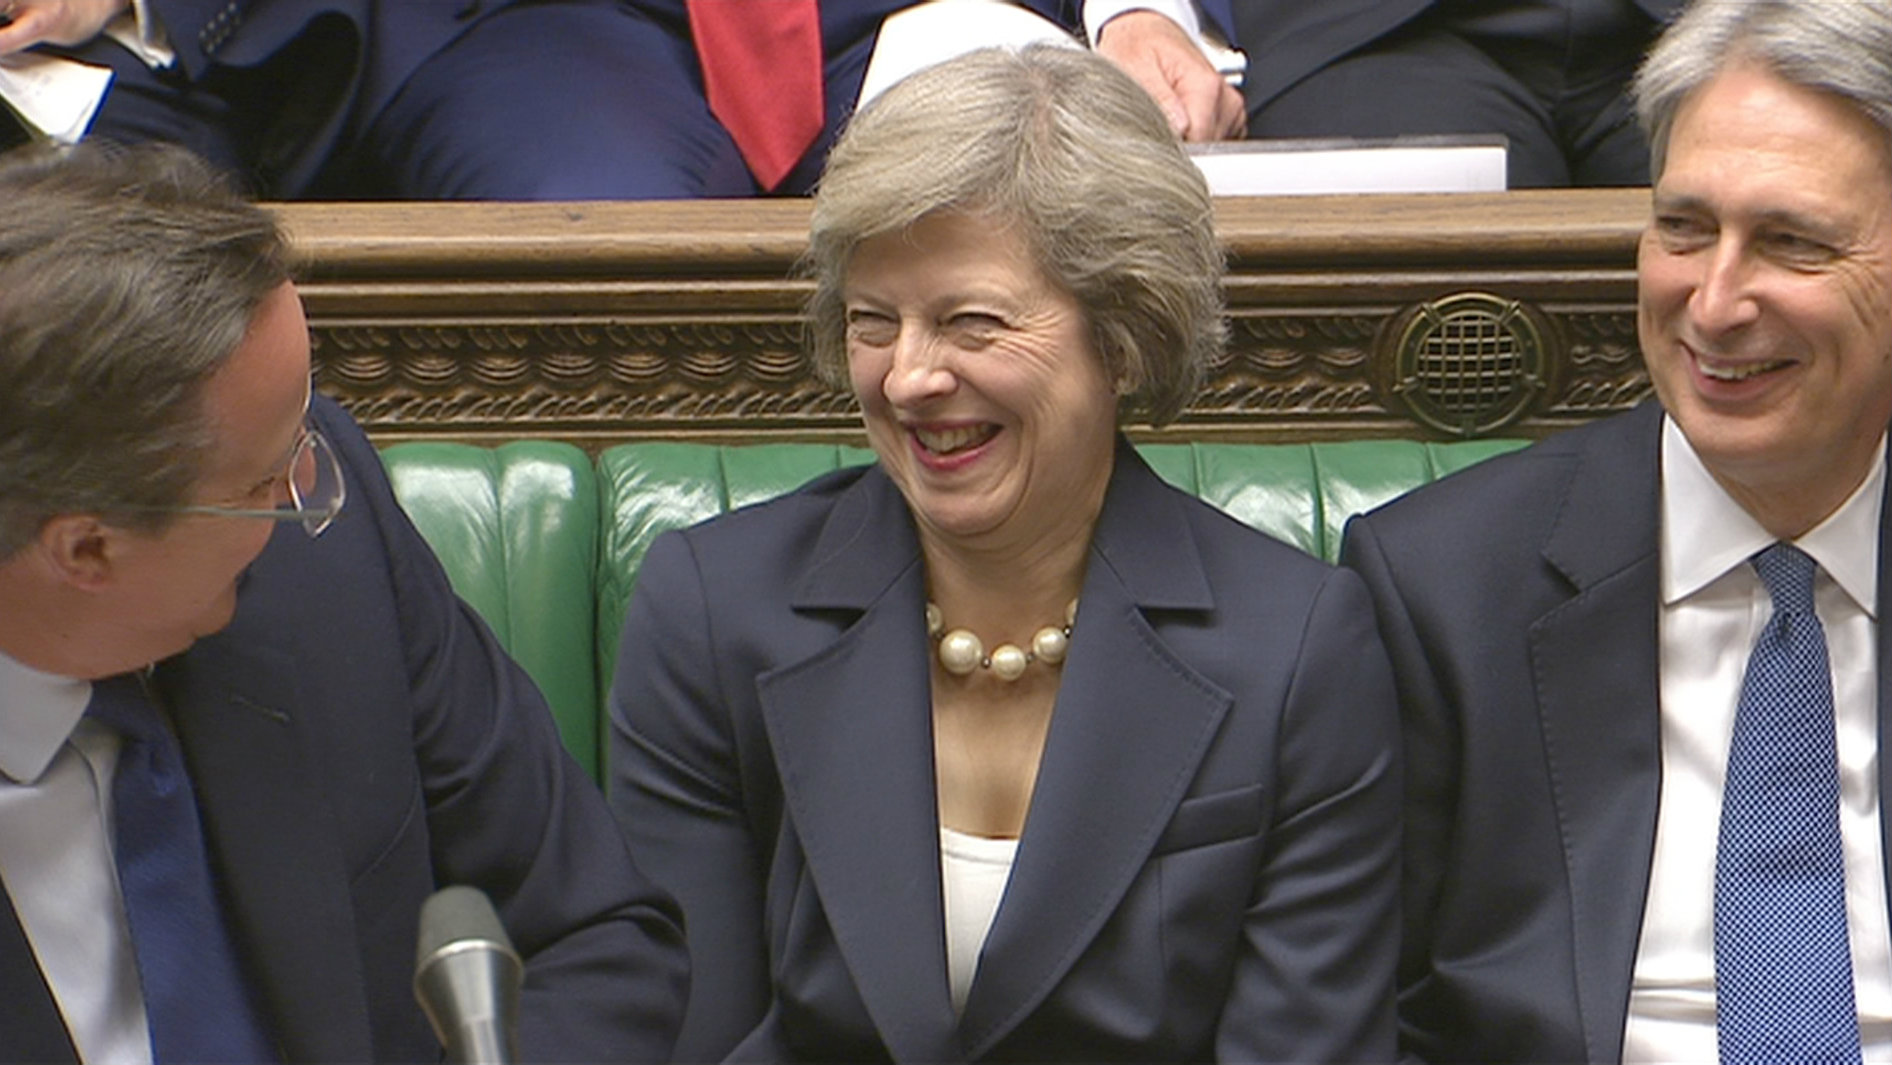 Theresa May laughs with former prime minister David Cameron and Chancellor Philip Hammond